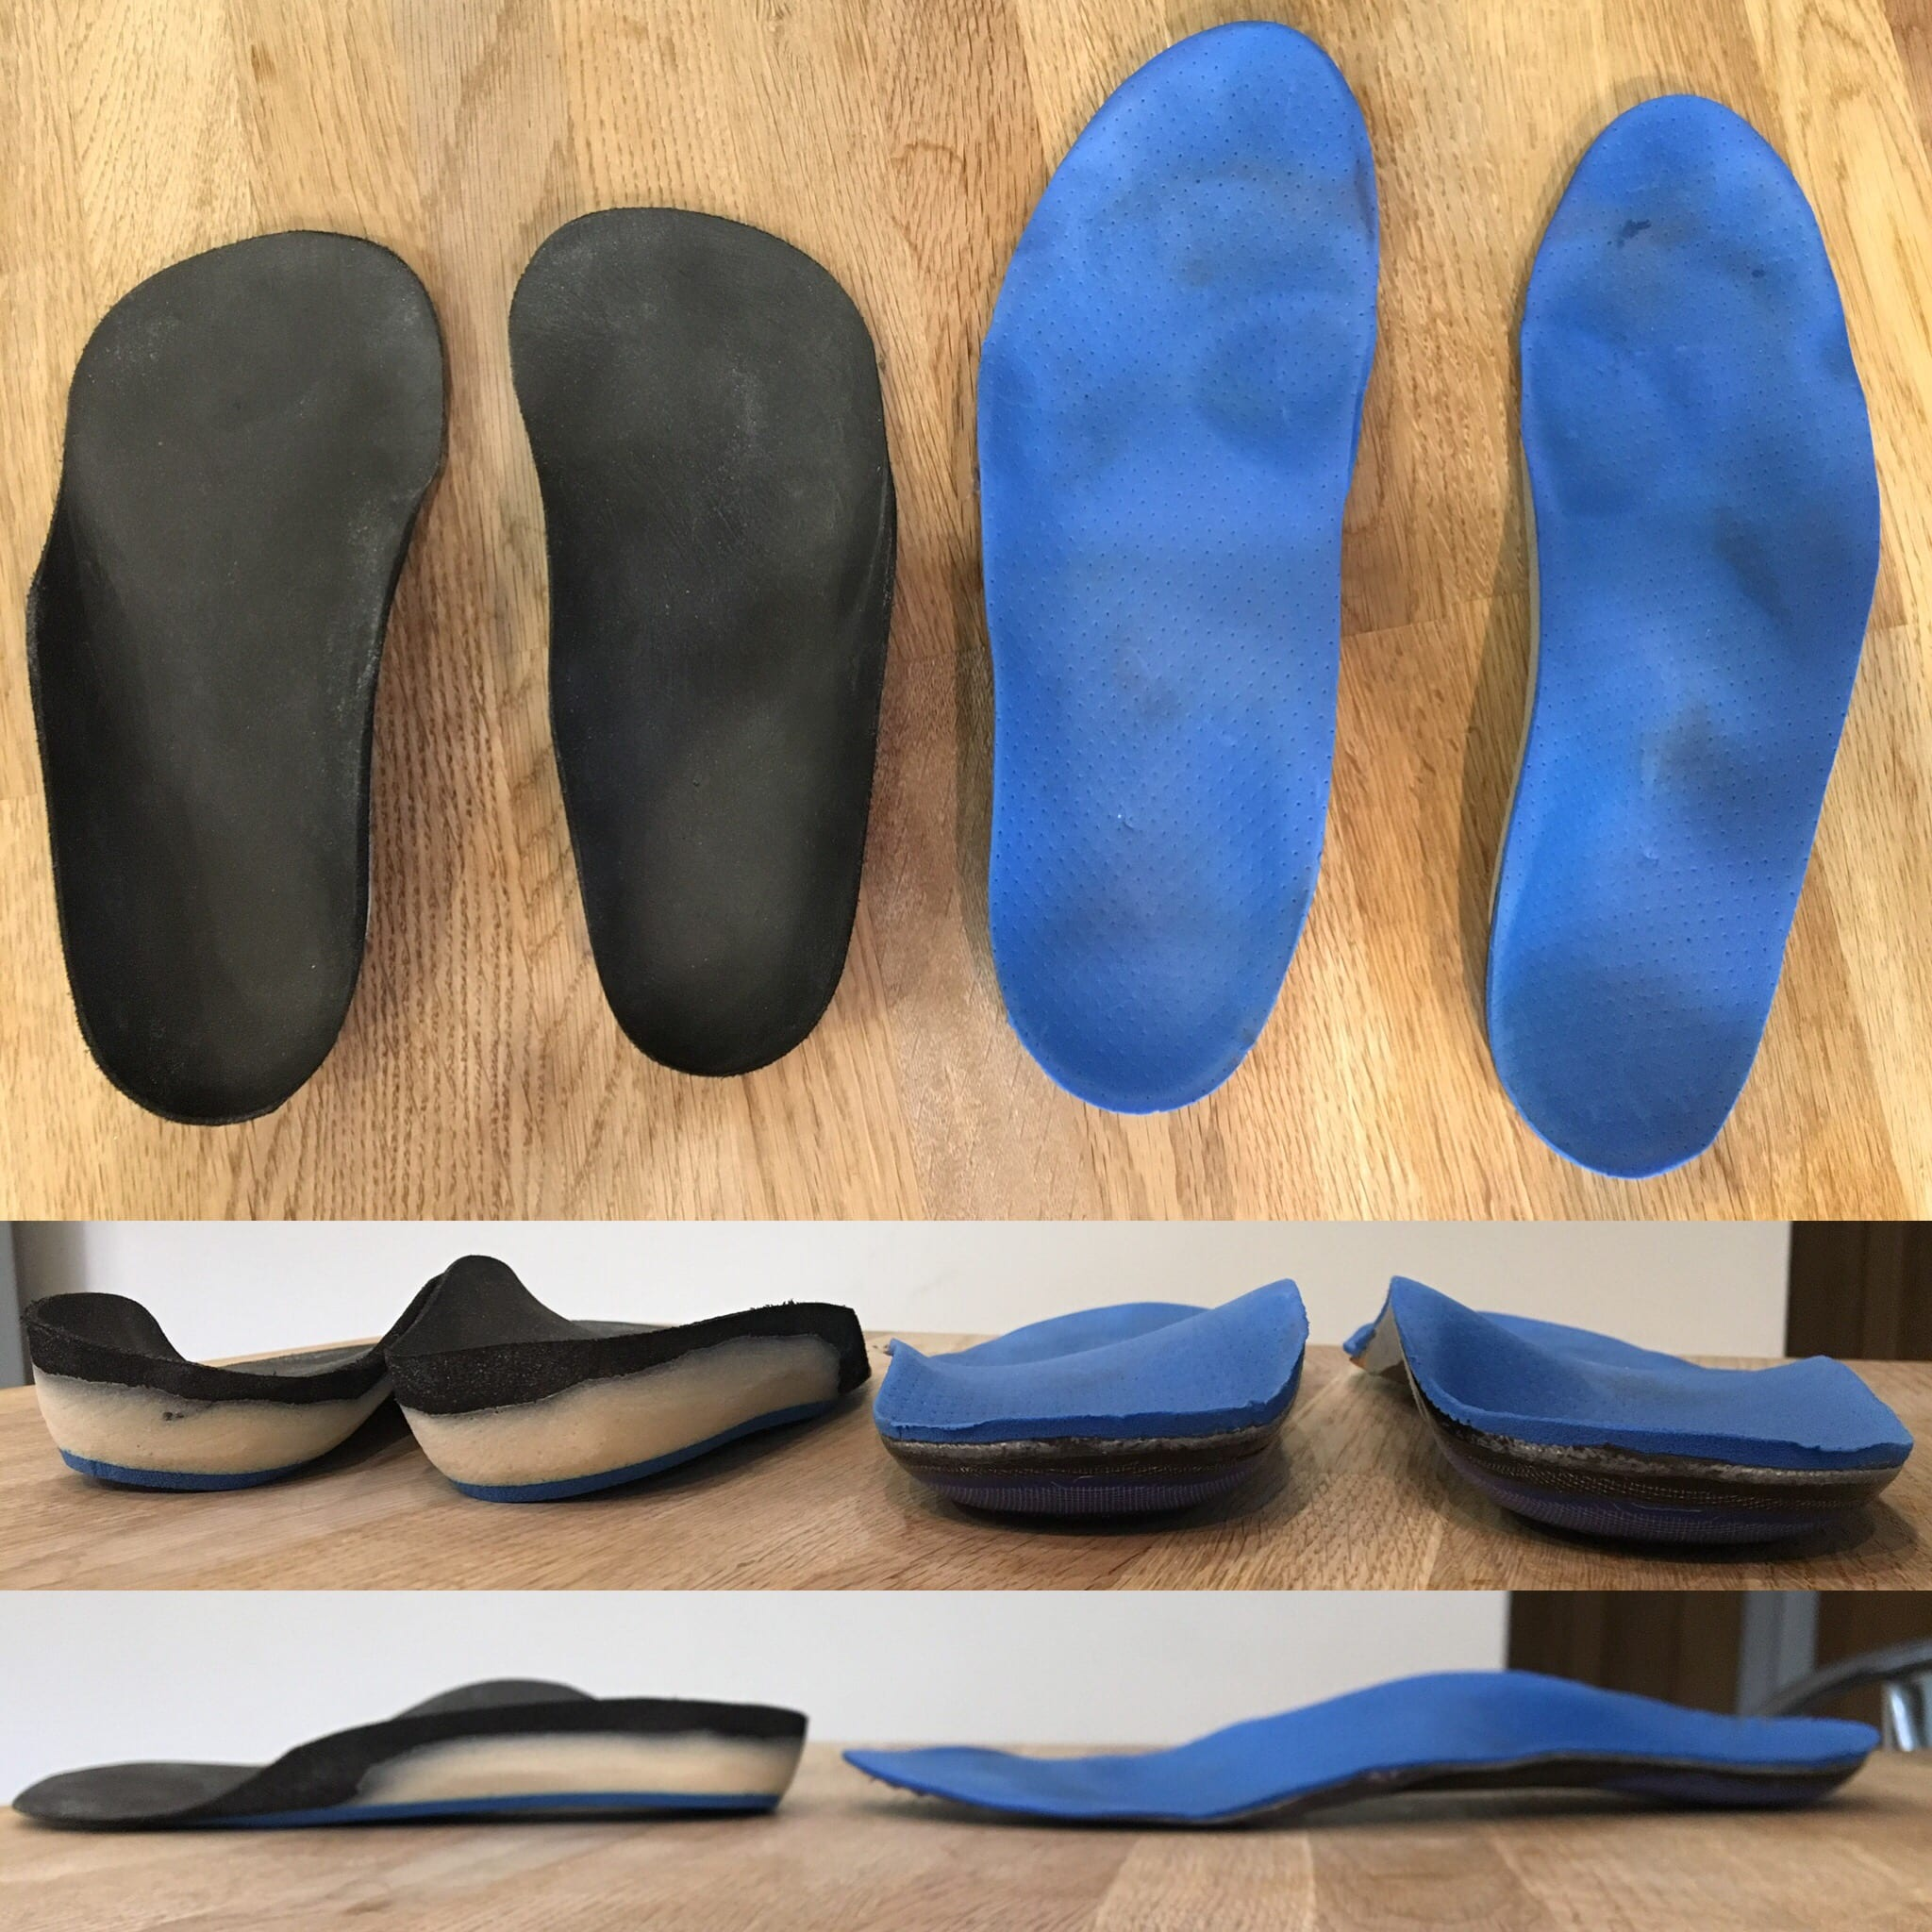 compare orthotic